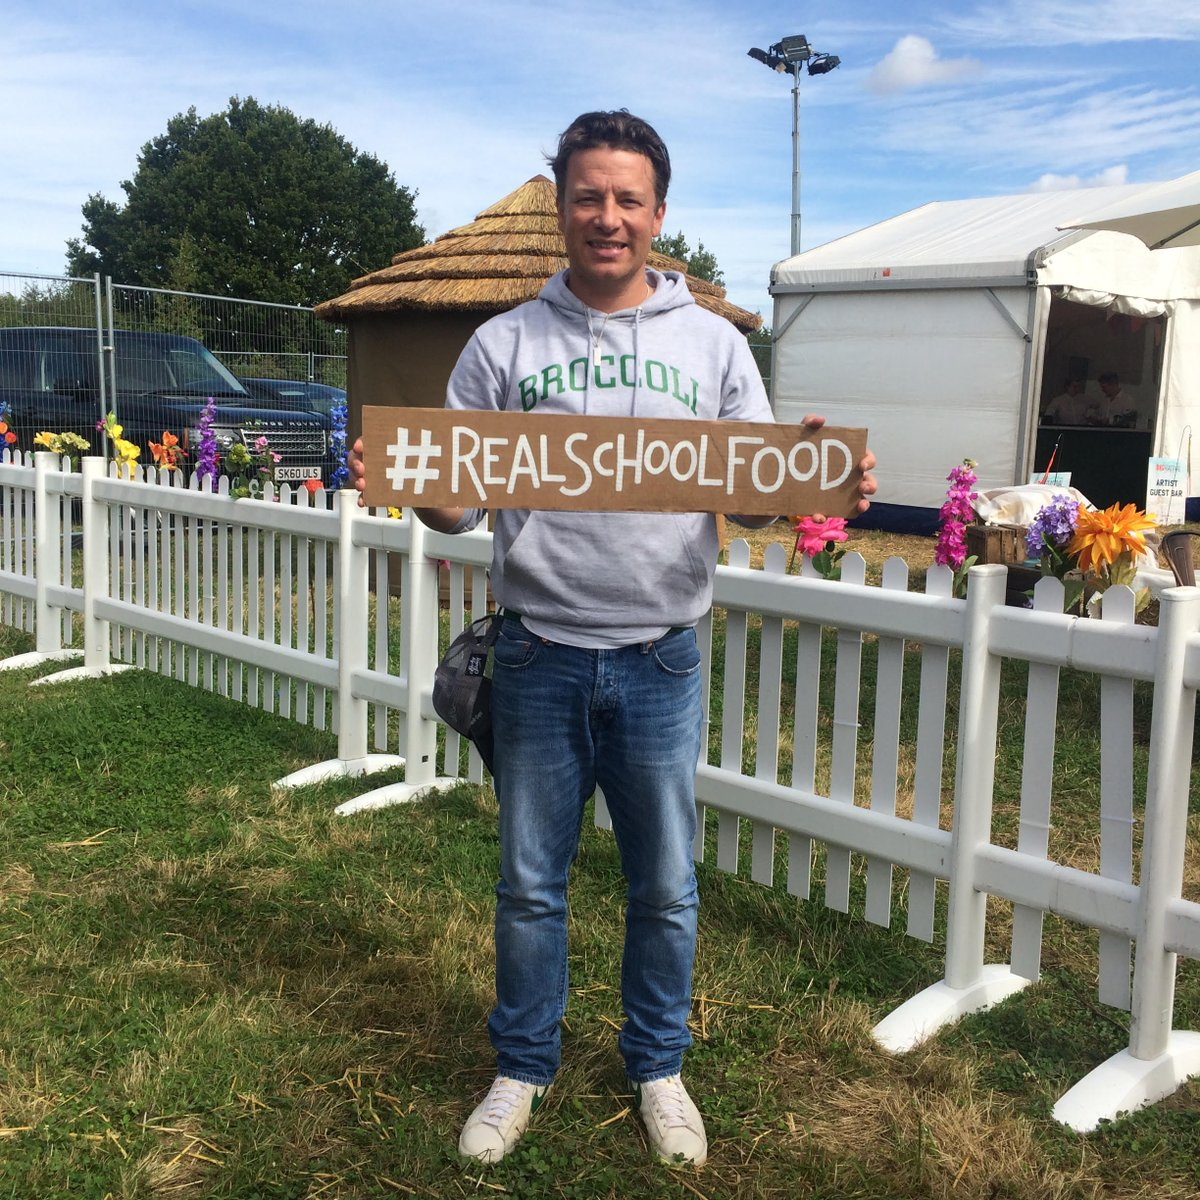 We should be feeding our kids fresh, home cooked food. @ChefAnnFnd! #realschoolfood http://t.co/jsS2WBZBNS http://t.co/IK4JVQrpKT